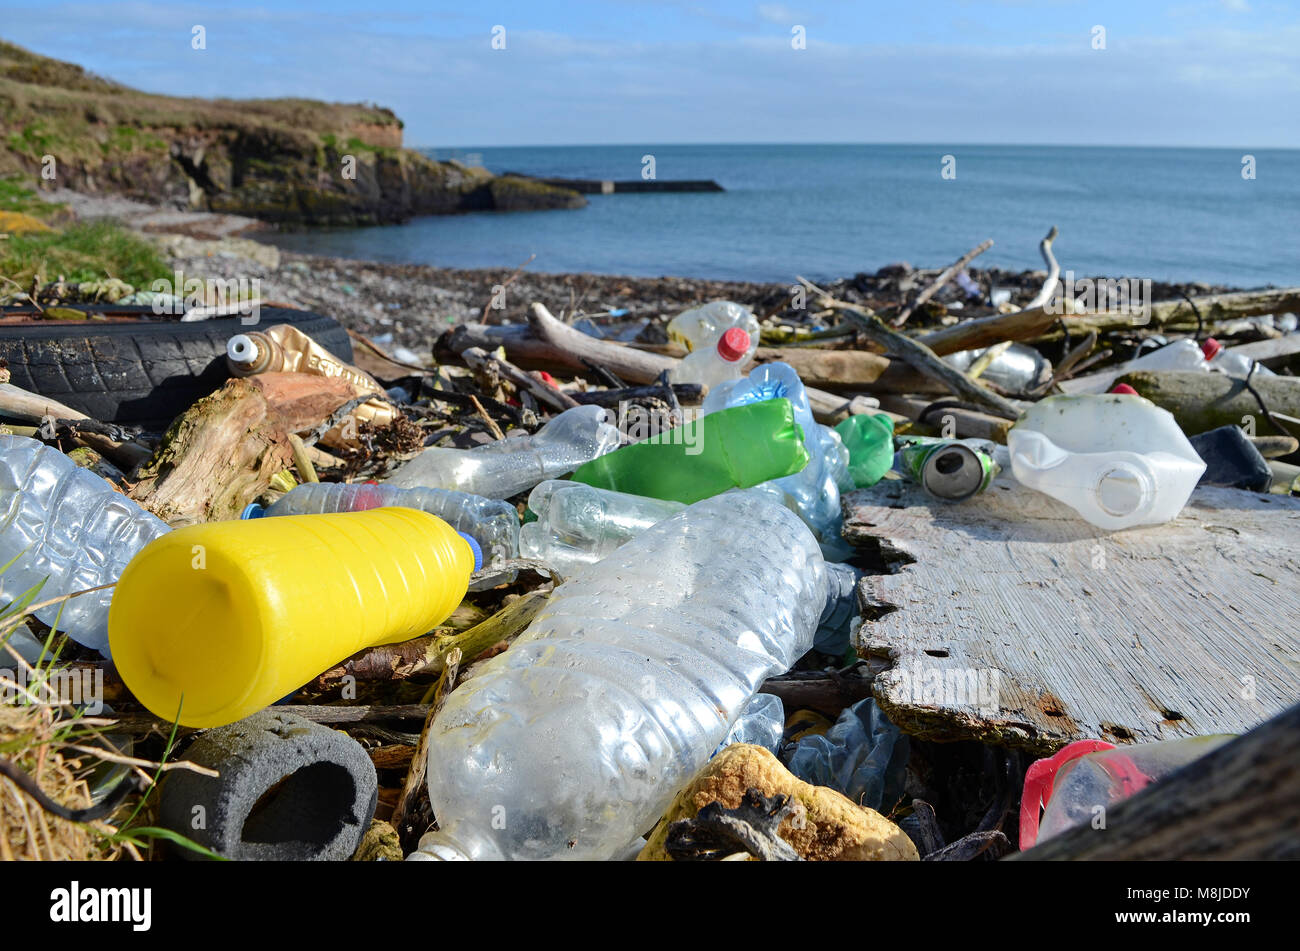 discarded plastic waste washed up on the beach at trabolgan on the southwest coast of ireland. - Stock Image